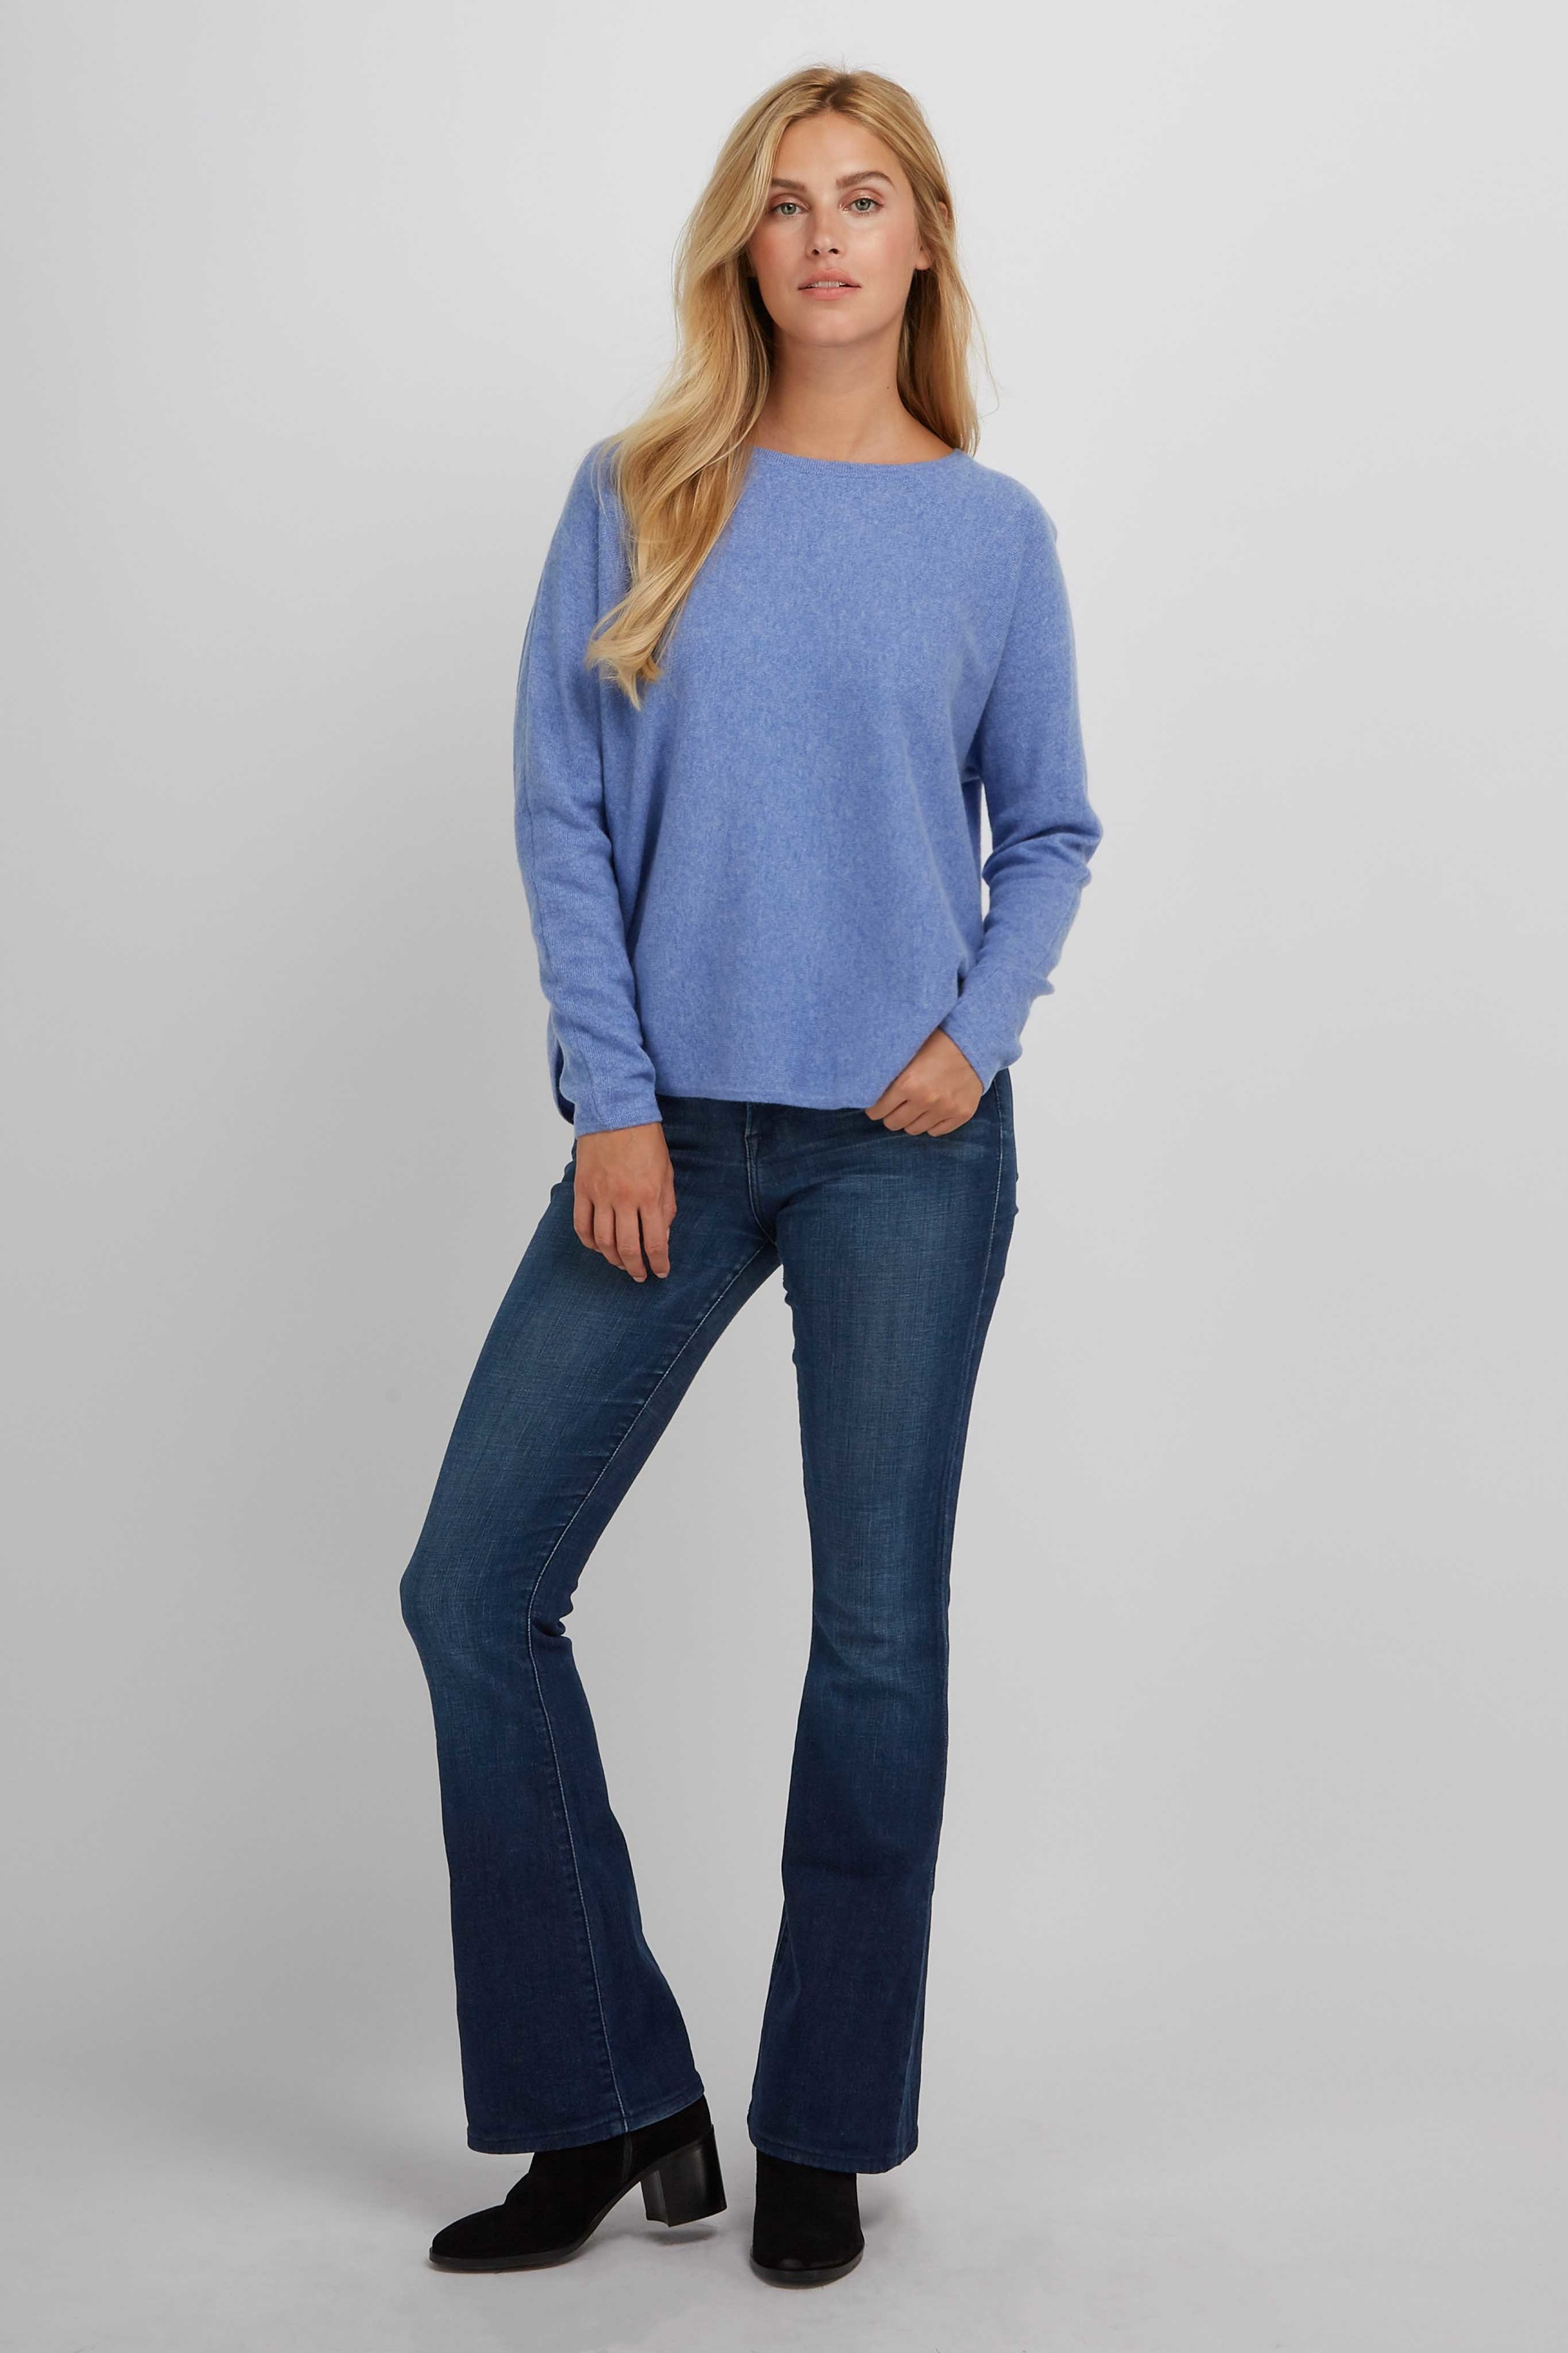 CurvedSweater_SkyBlue_2